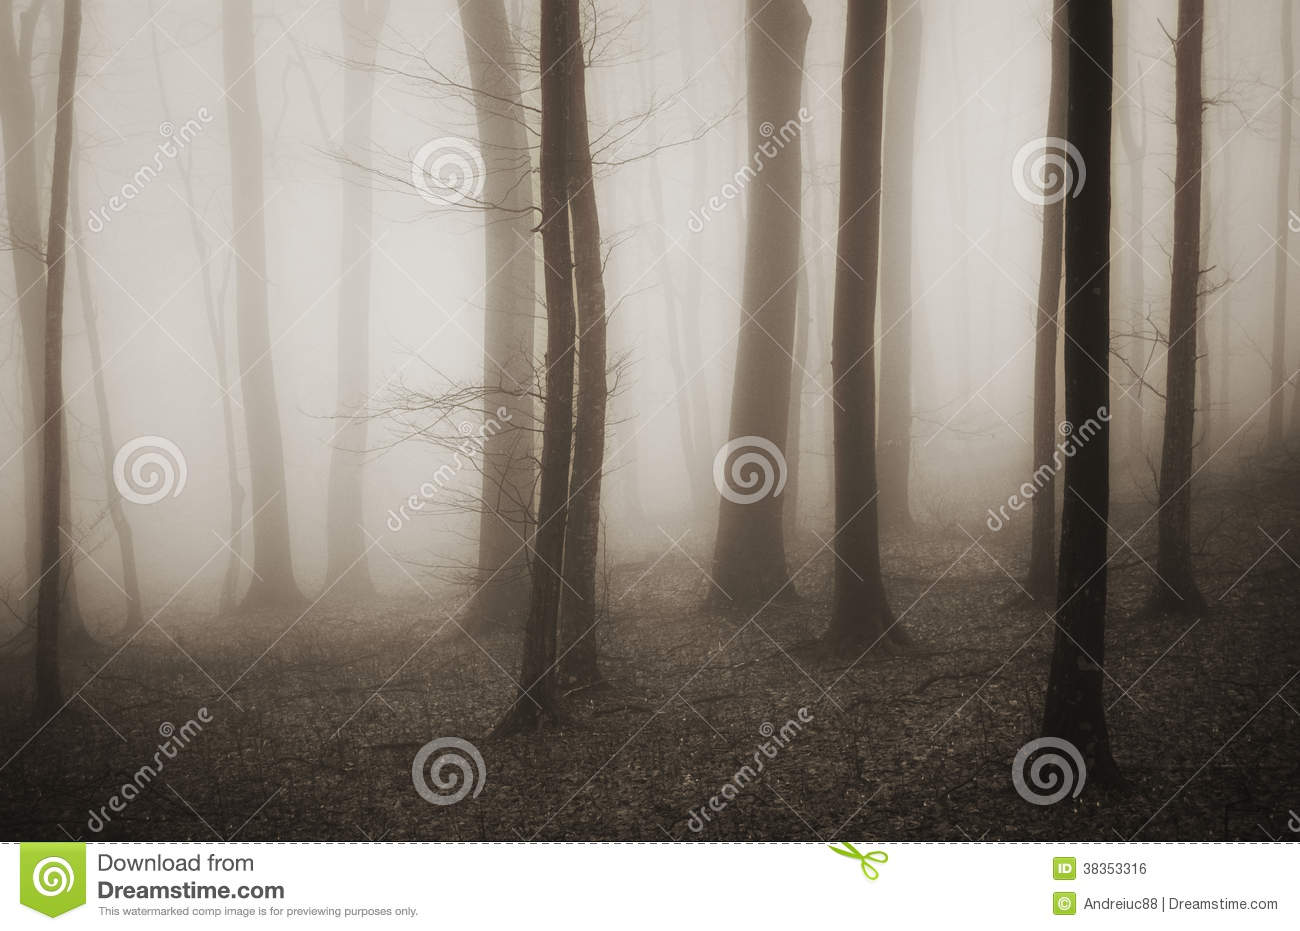 mysterious forest in winter - photo #7